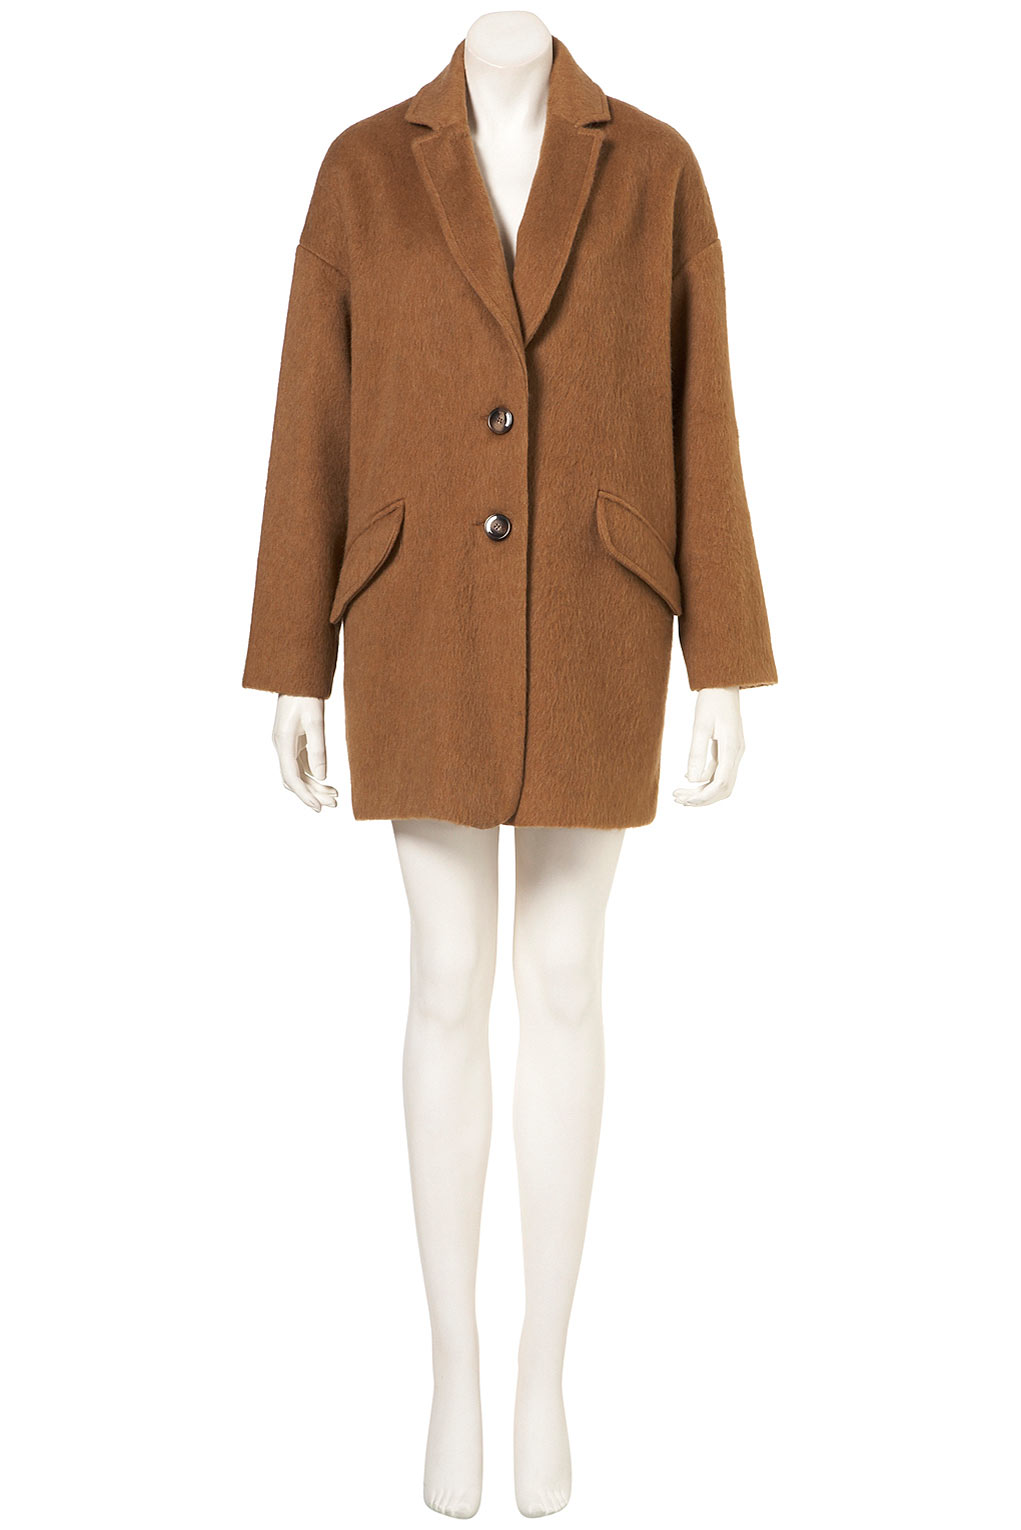 Buy Boohoo Women's Brown Shawl Collar Boyfriend Coat. Similar products also available. SALE now on!